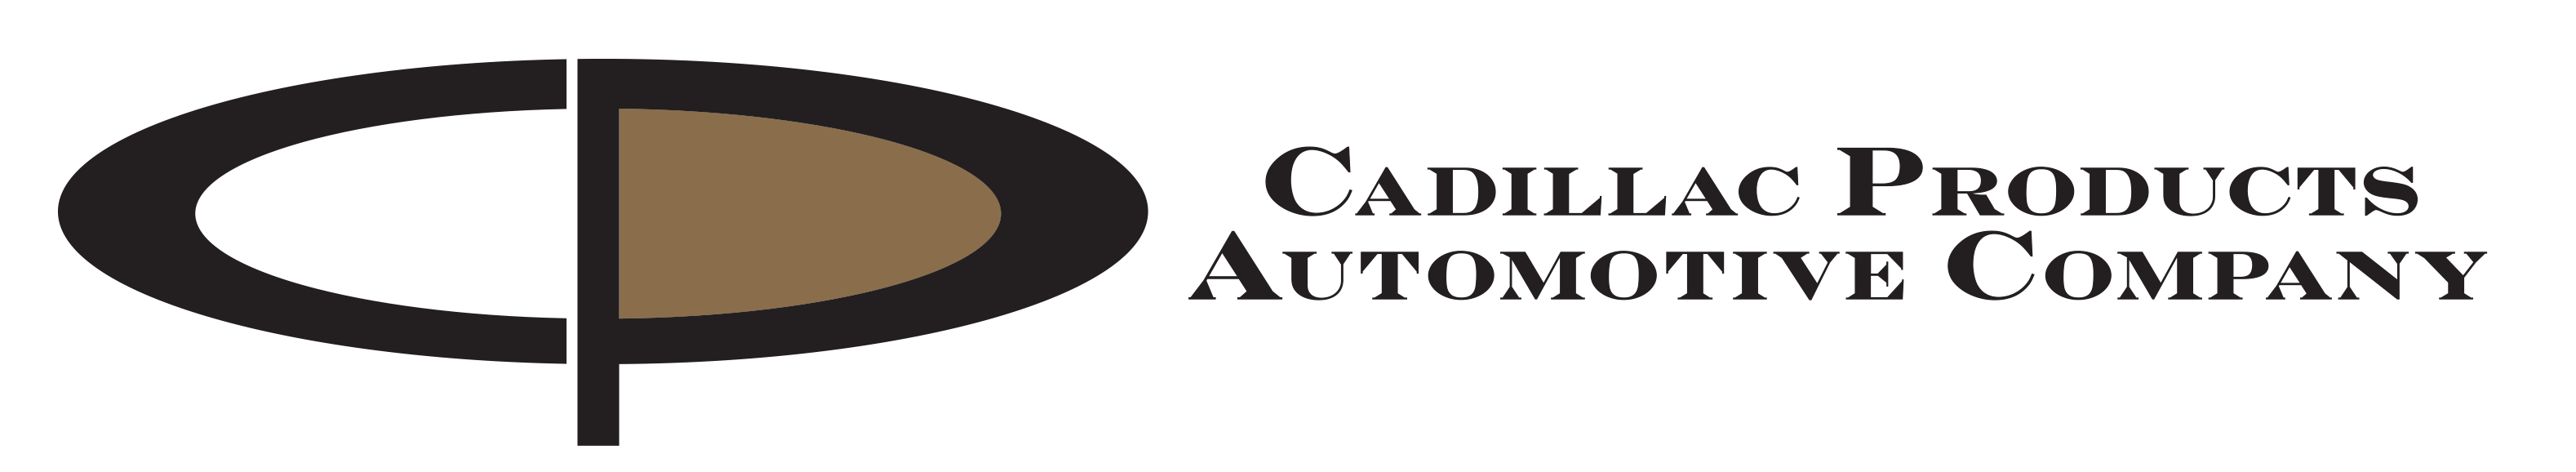 Cadillac Products Automotive Company